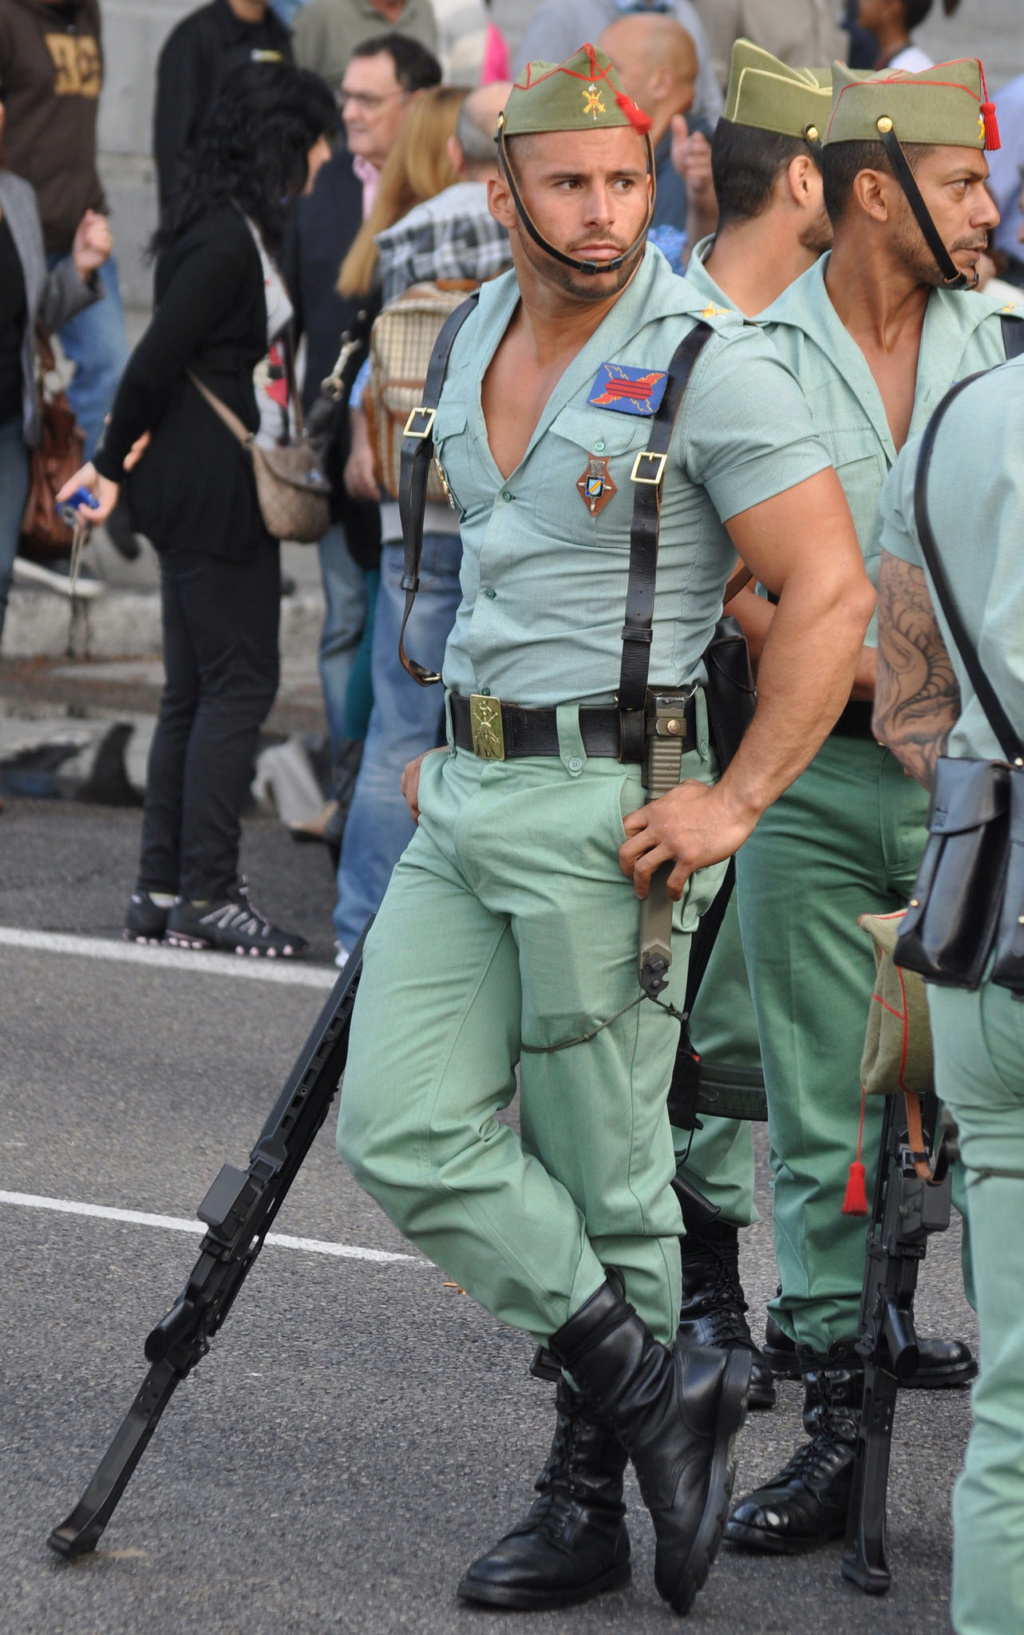 25 Hottest Military Uniforms Ever Spanis14